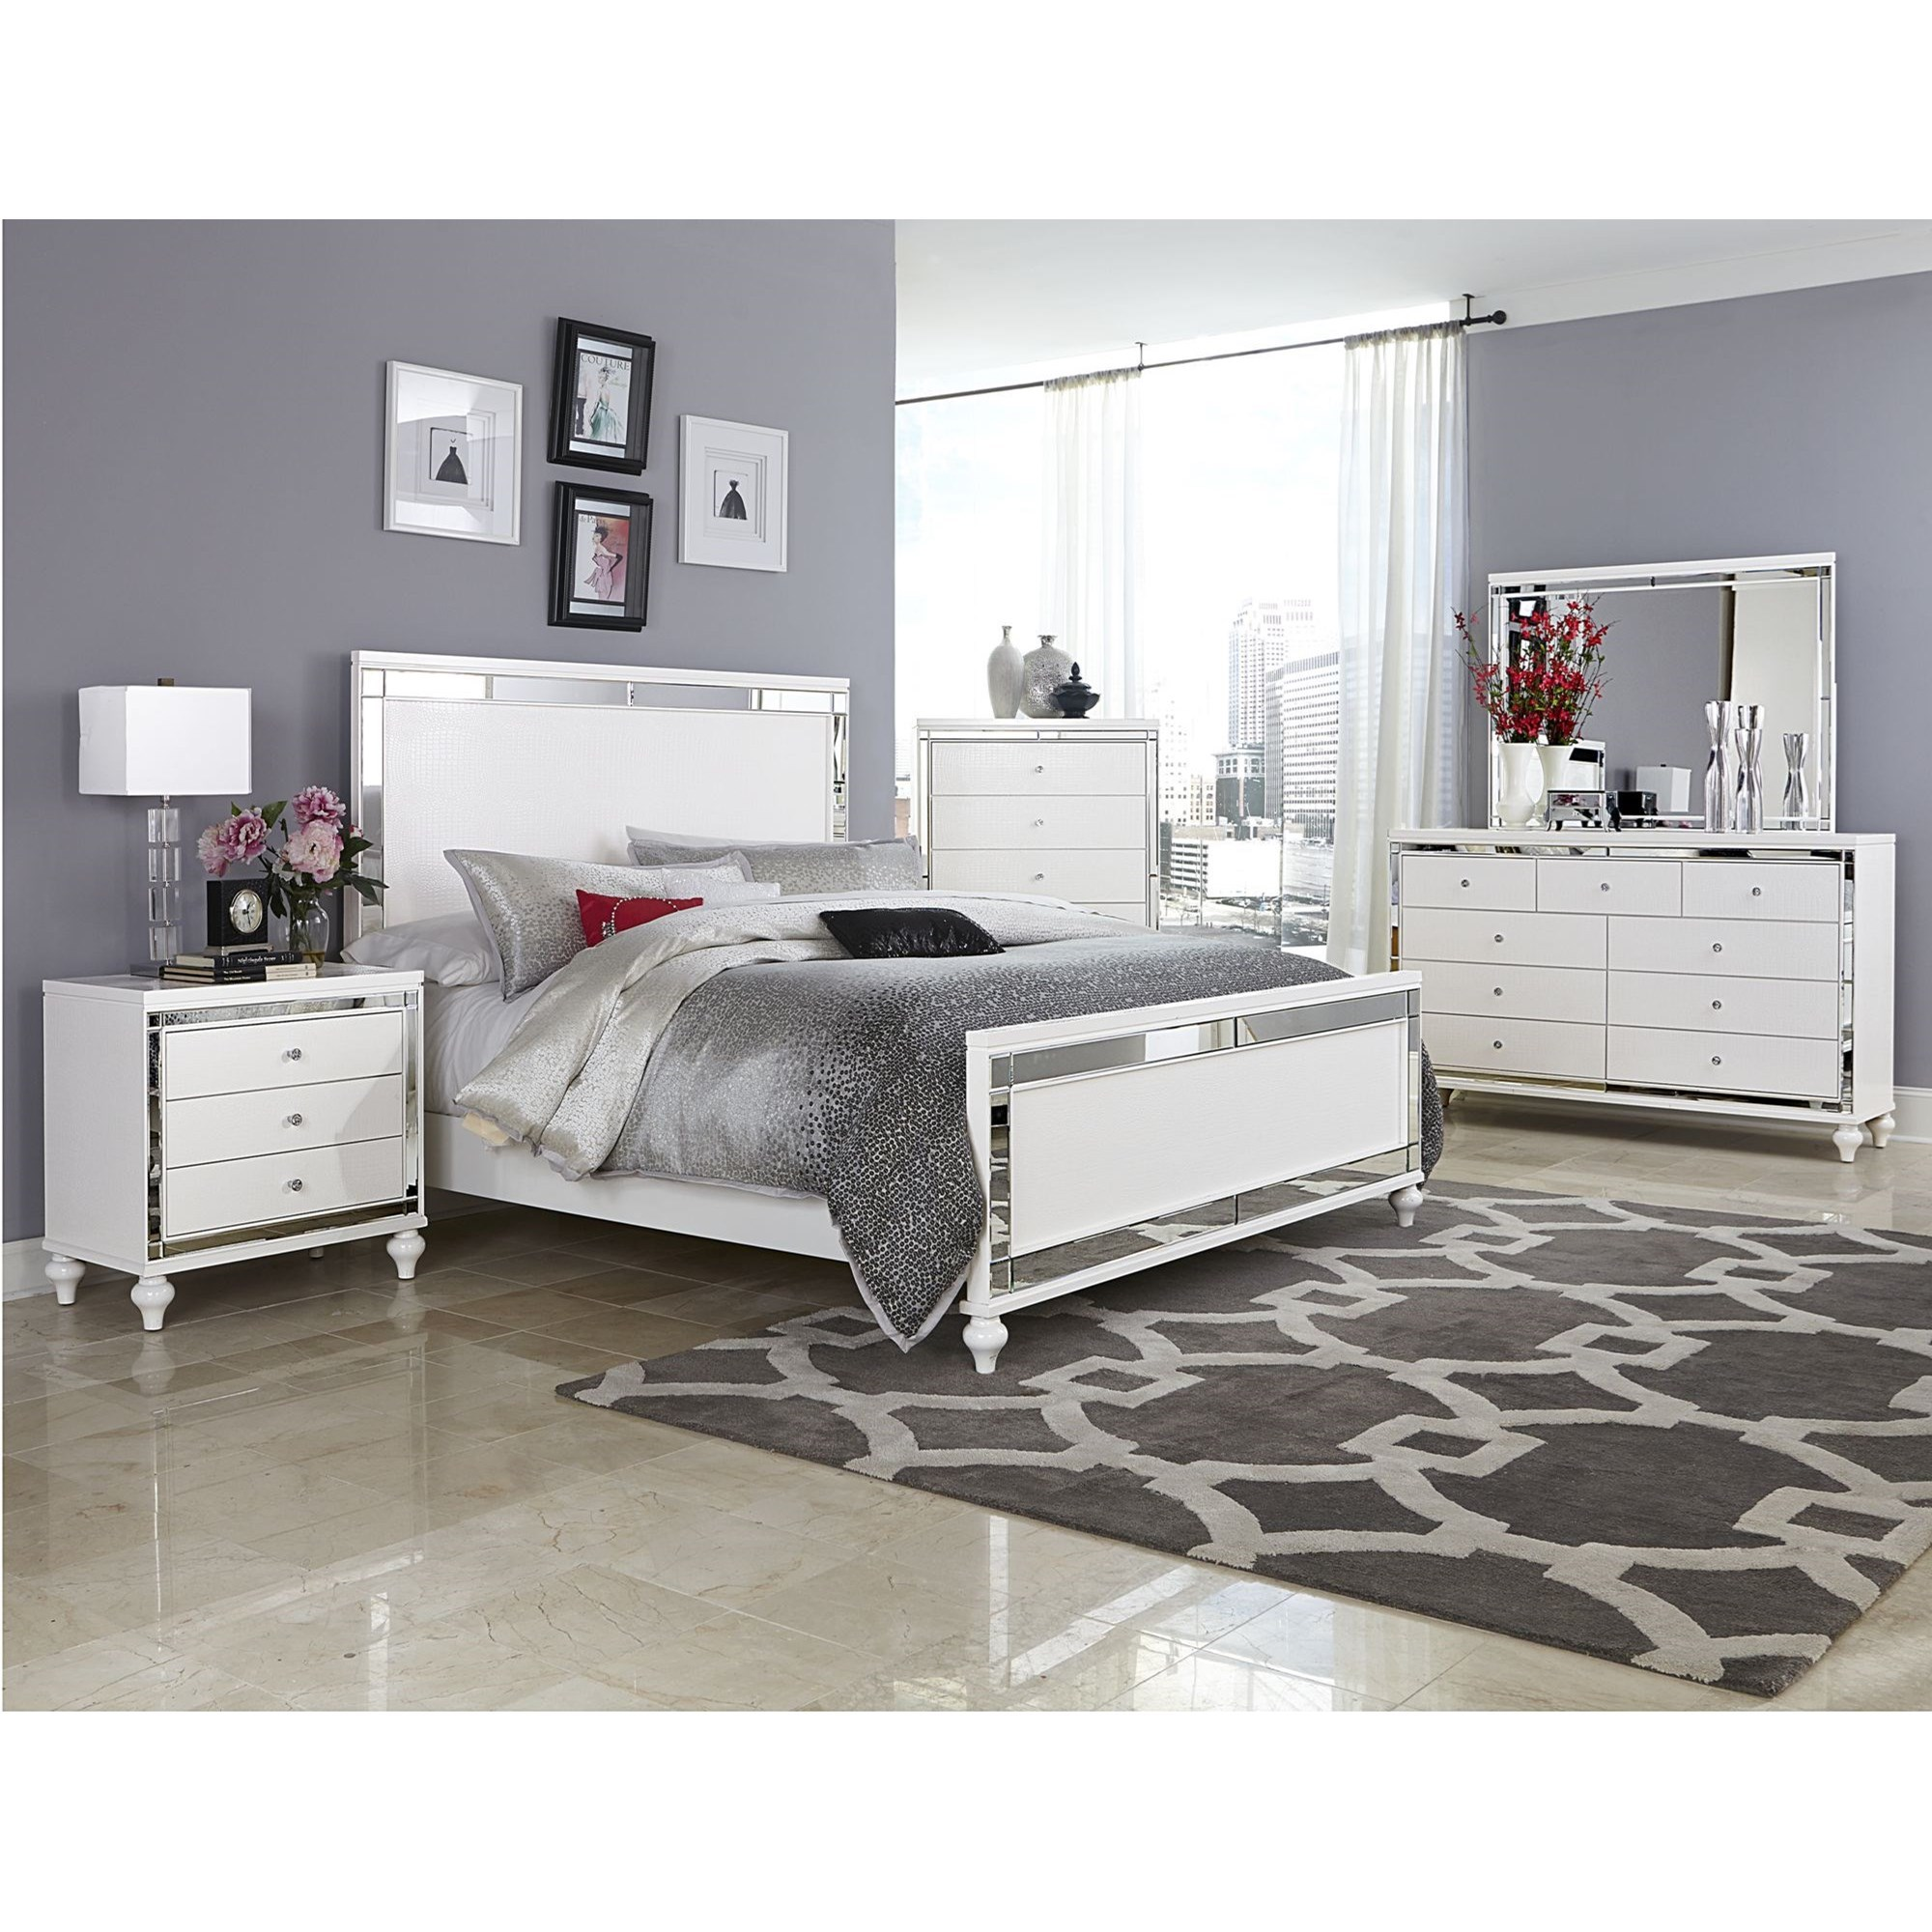 Alonza Cal King Bedroom Group by Homelegance at Value City Furniture